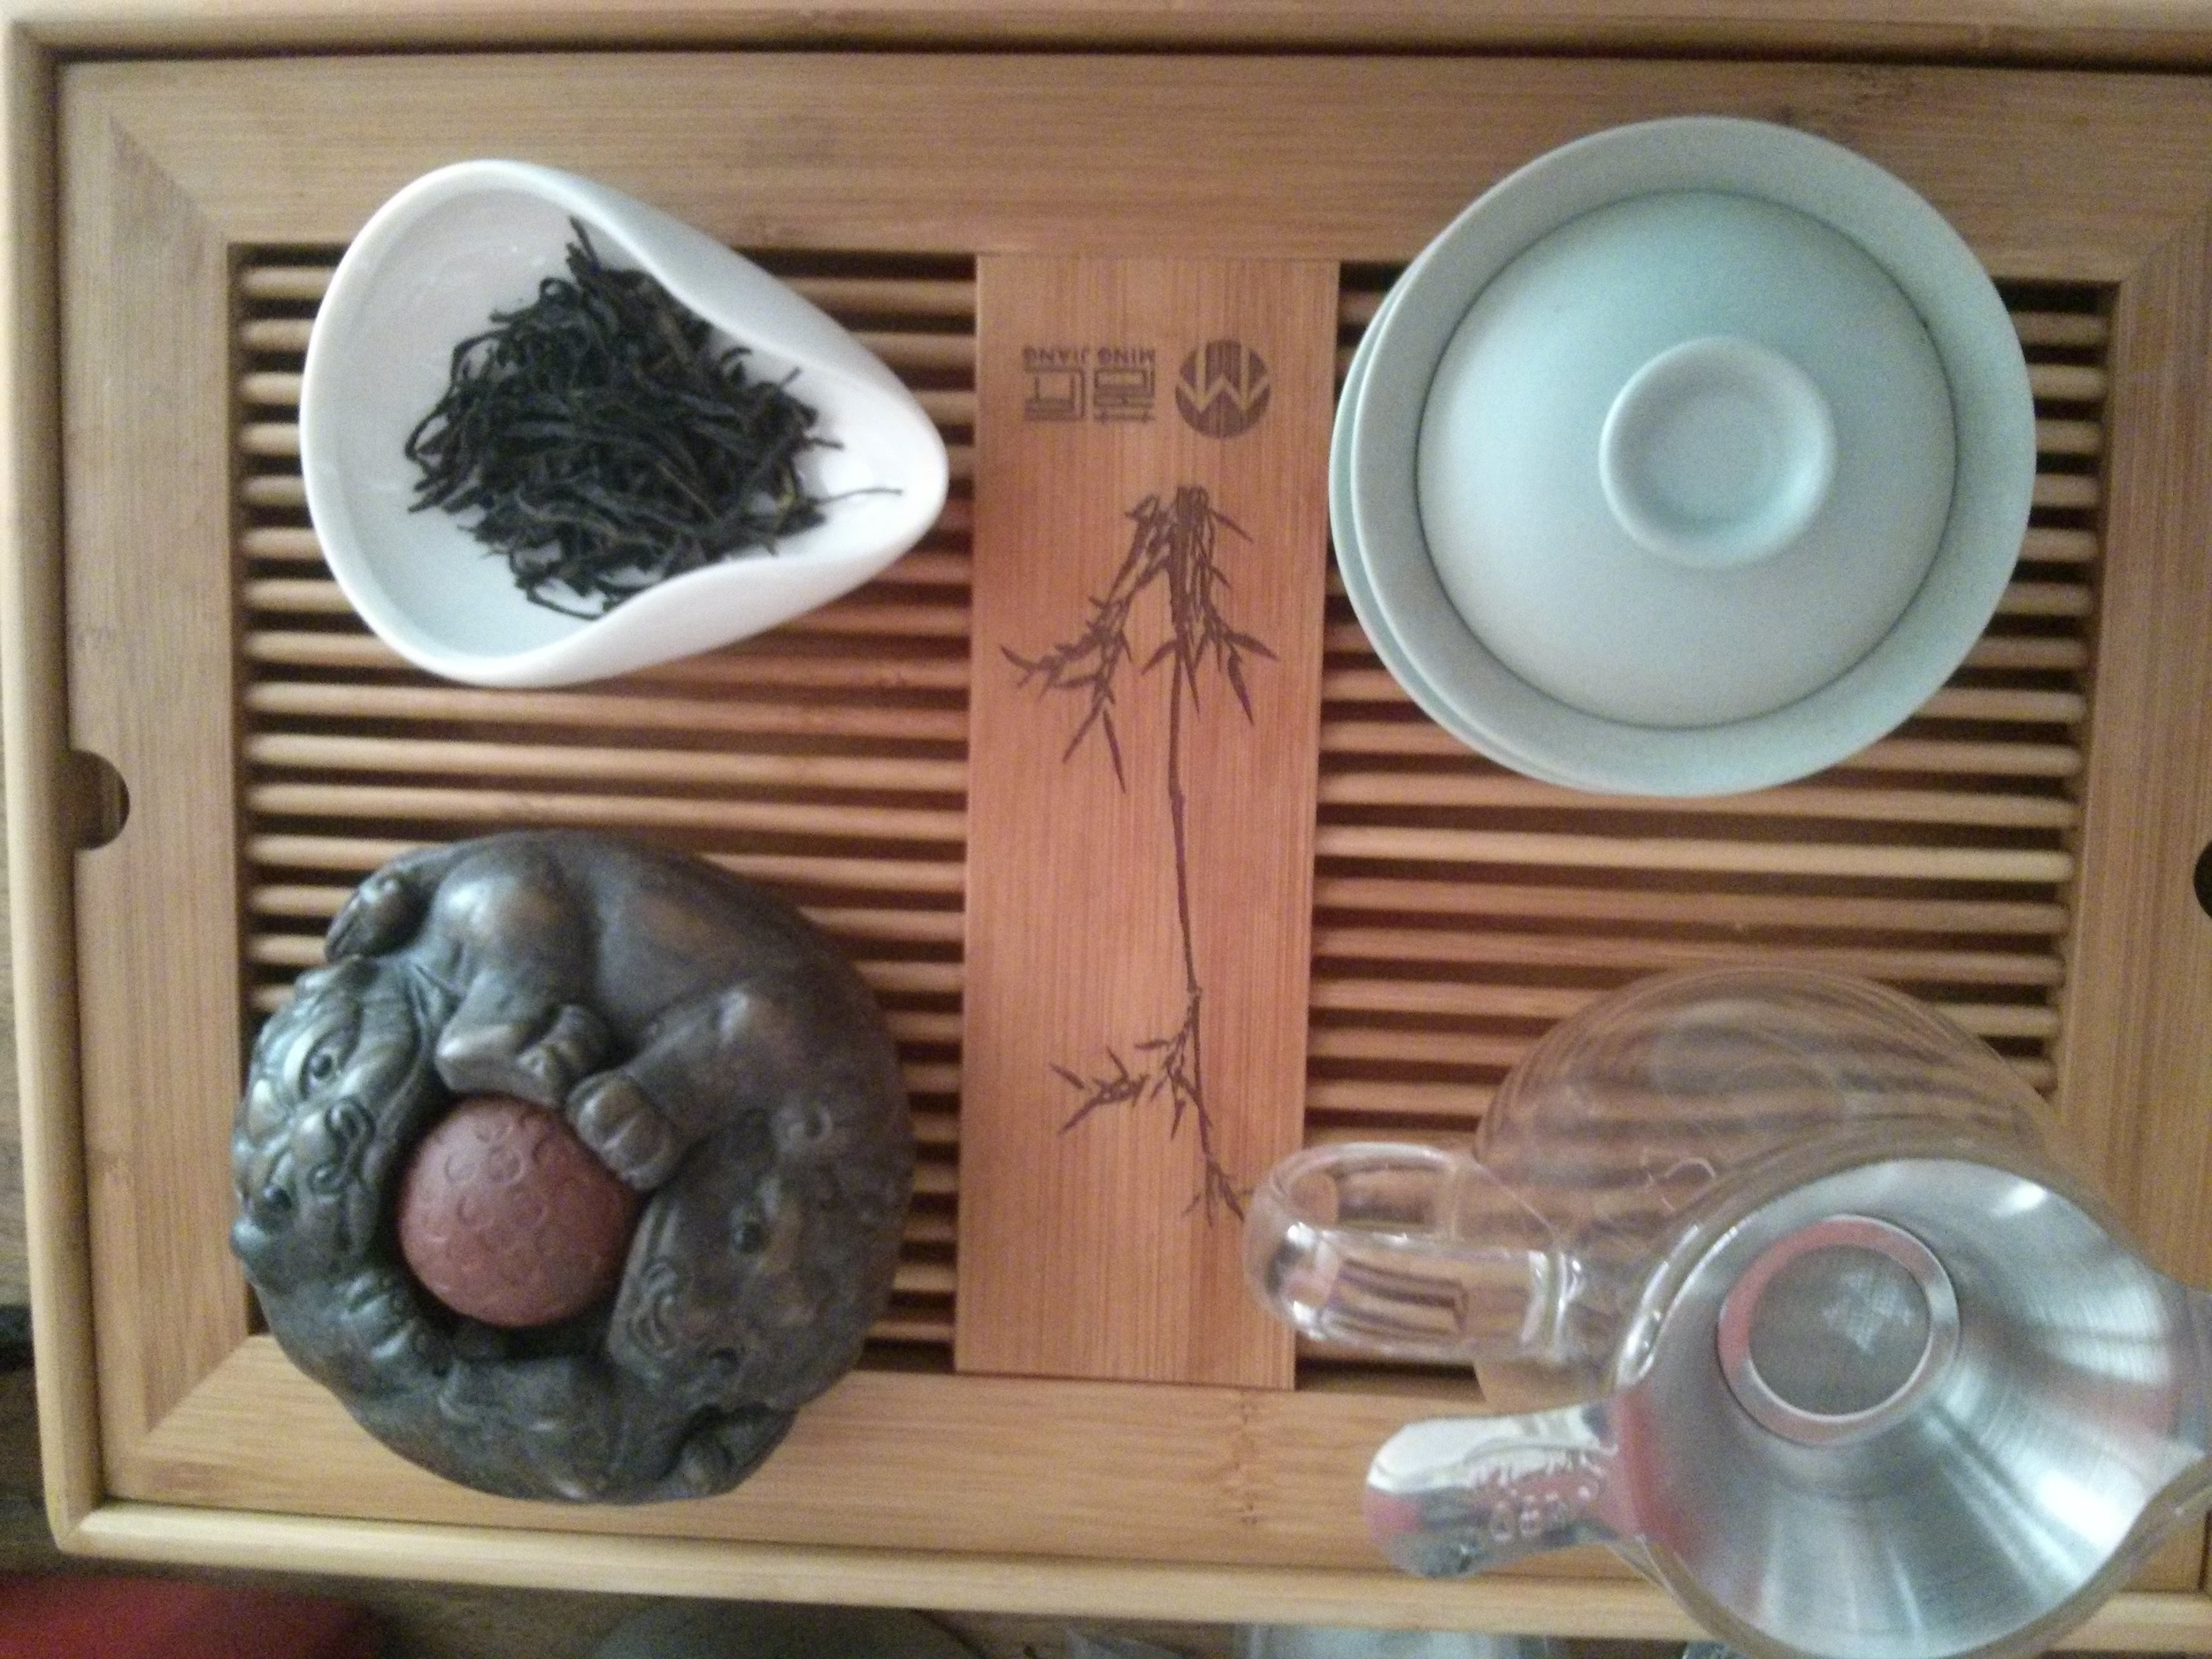 The setup. I tried out a new tea pet, but I think it's way too large for my purposes.